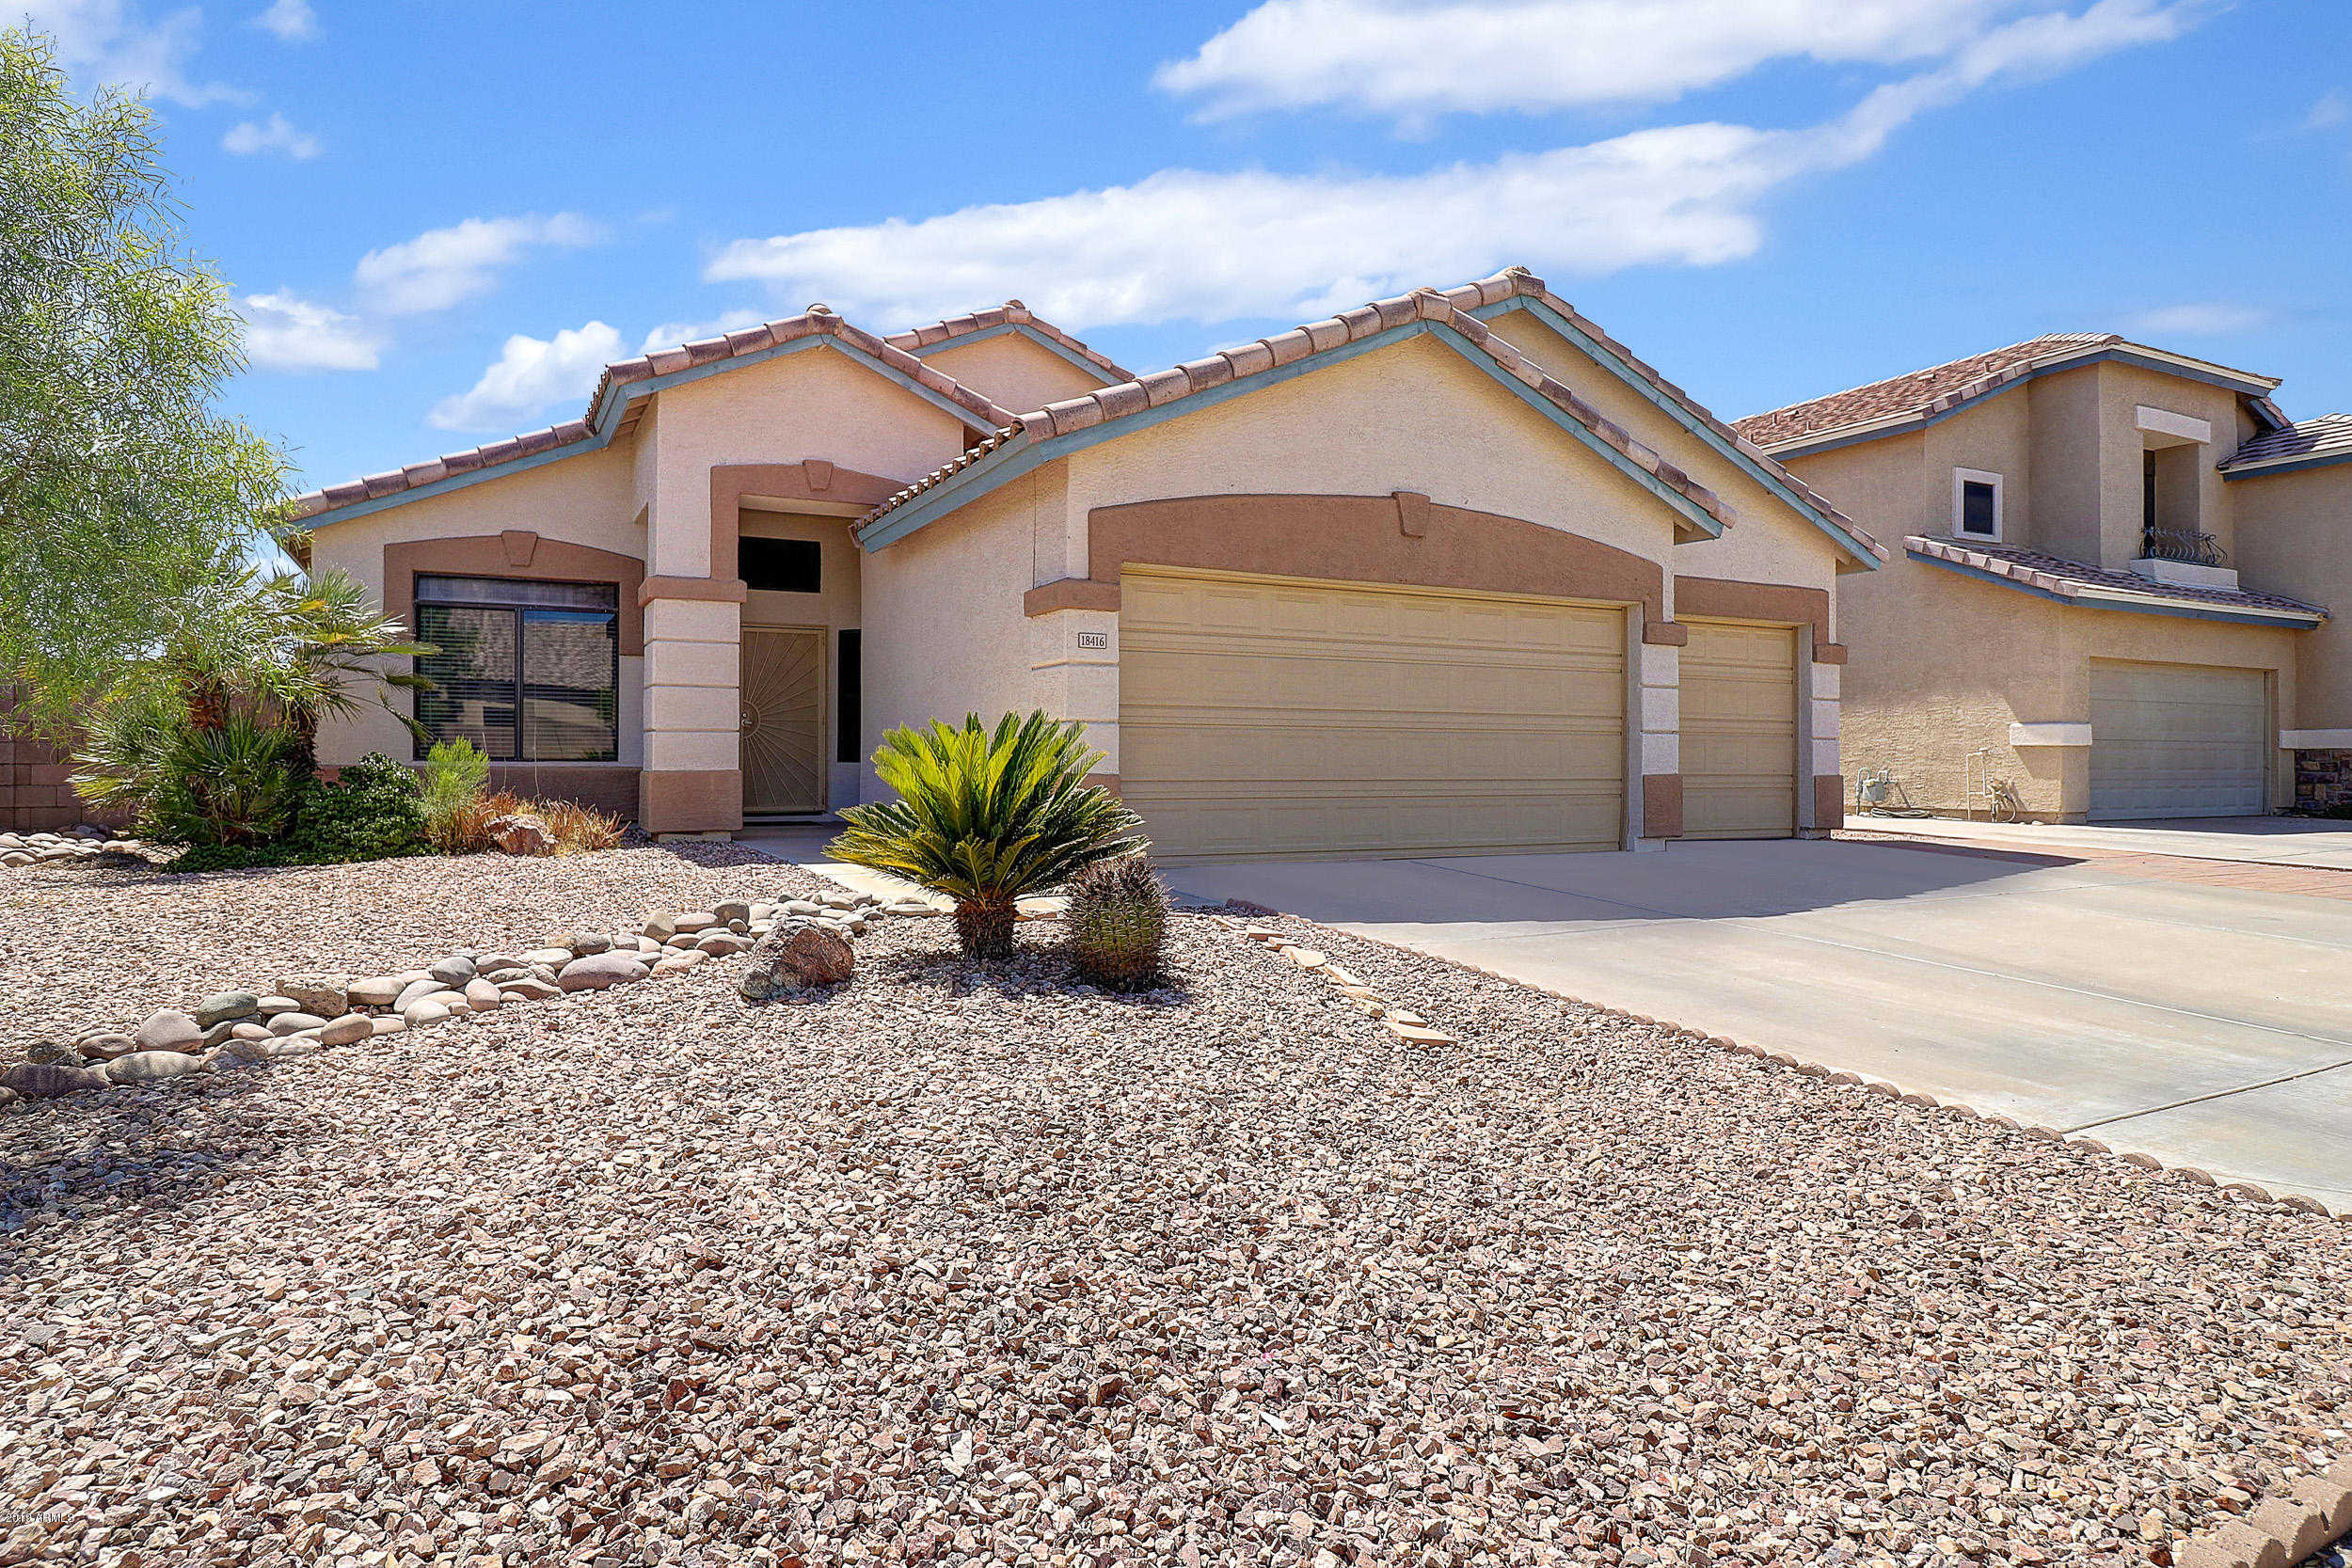 $309,950 - 4Br/2Ba - Home for Sale in Union Hills 1, Glendale